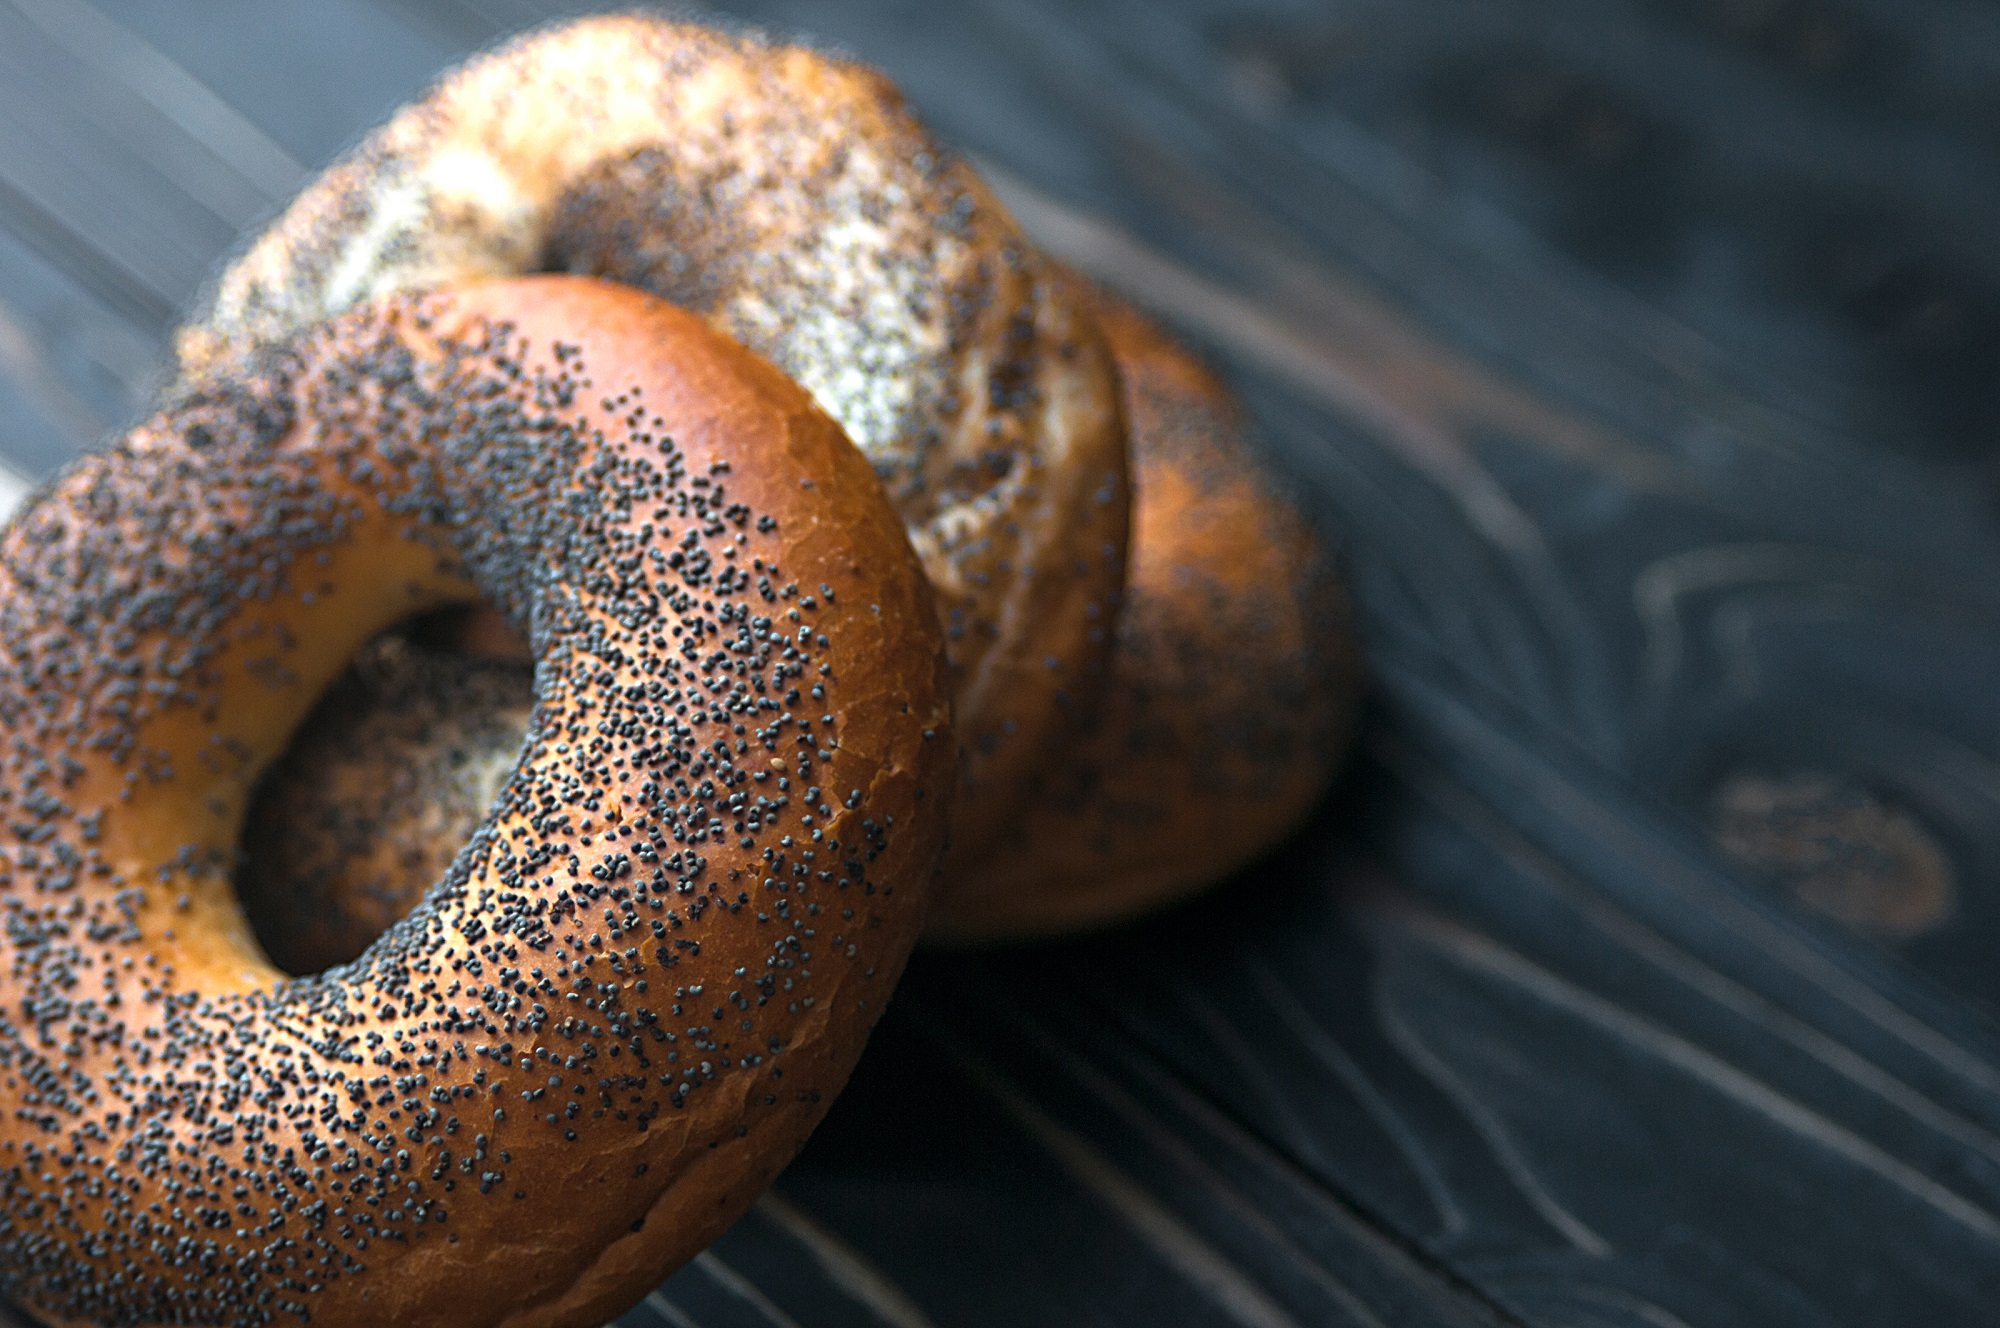 Poppy Seed Bagels on Black Wooden Tabletop